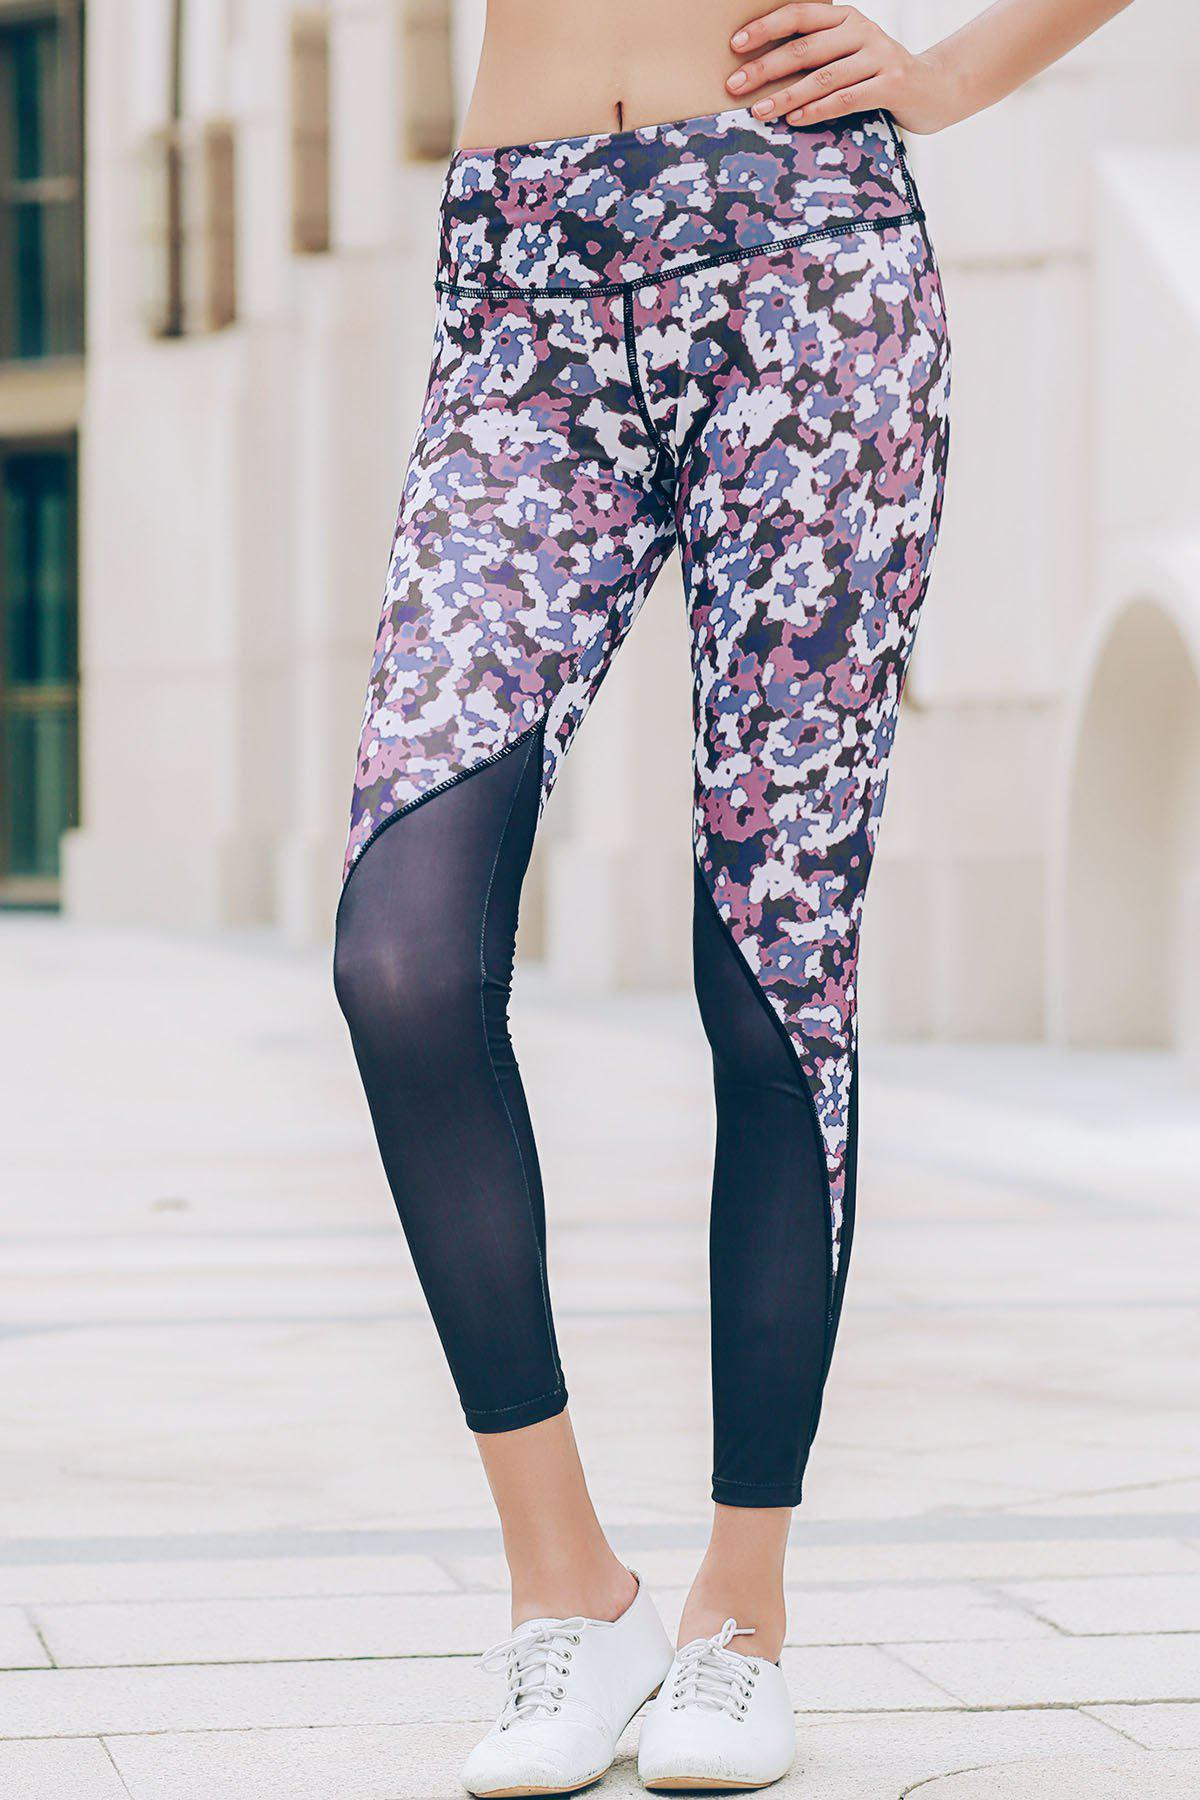 Stylish Elastic Waist Printed Skinny Women's Yoga Pants